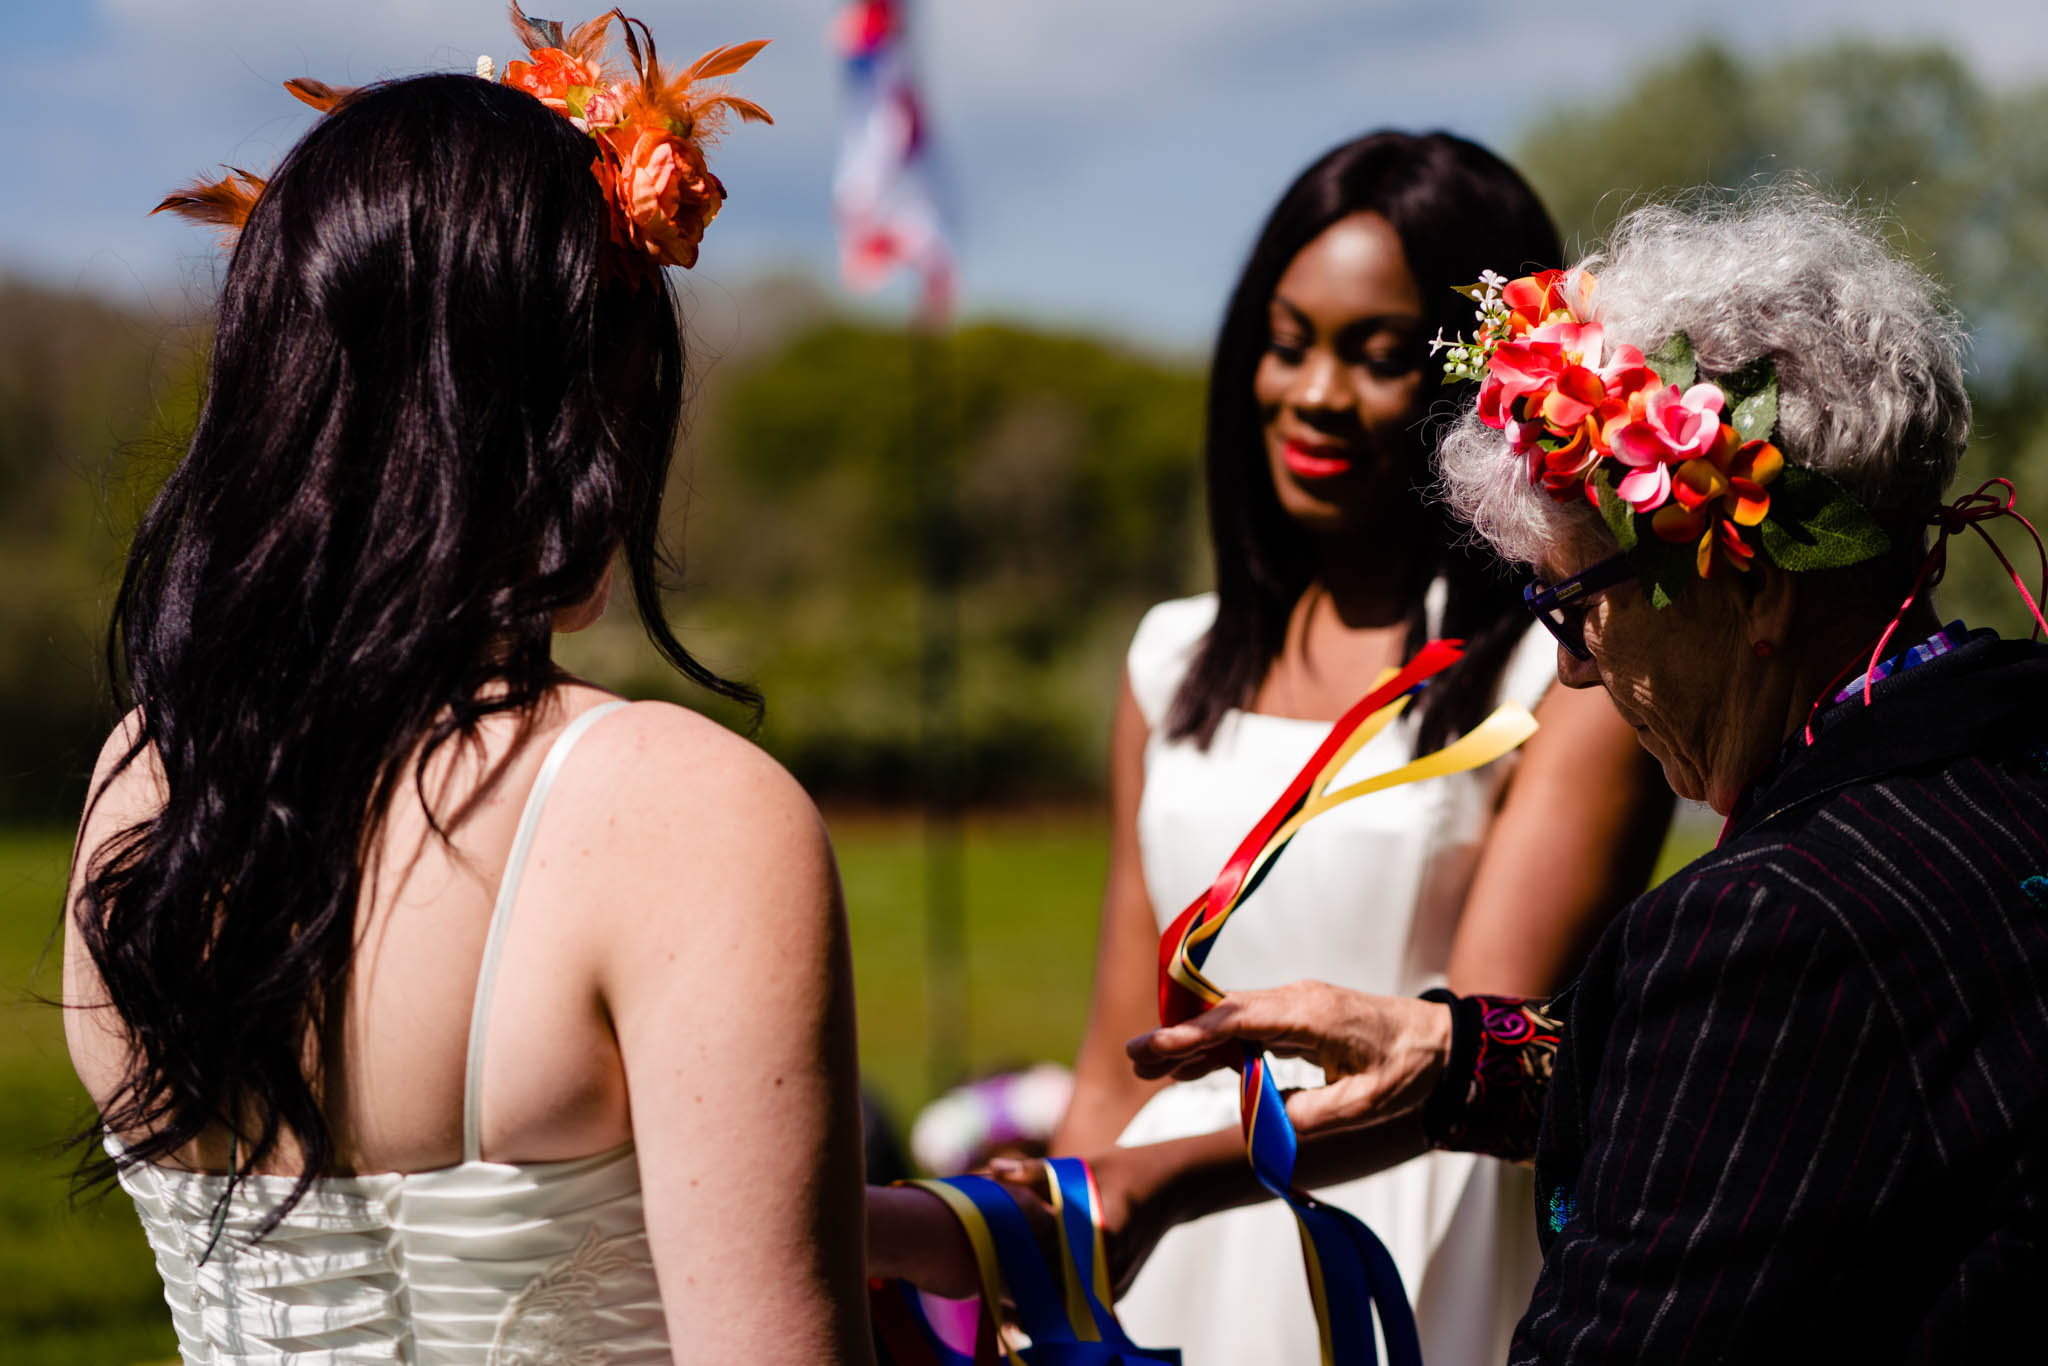 Festival wedding - Unconventional Wedding Festival - Star Ceremonies - Hand fasting ceremony - vicki clayson photography